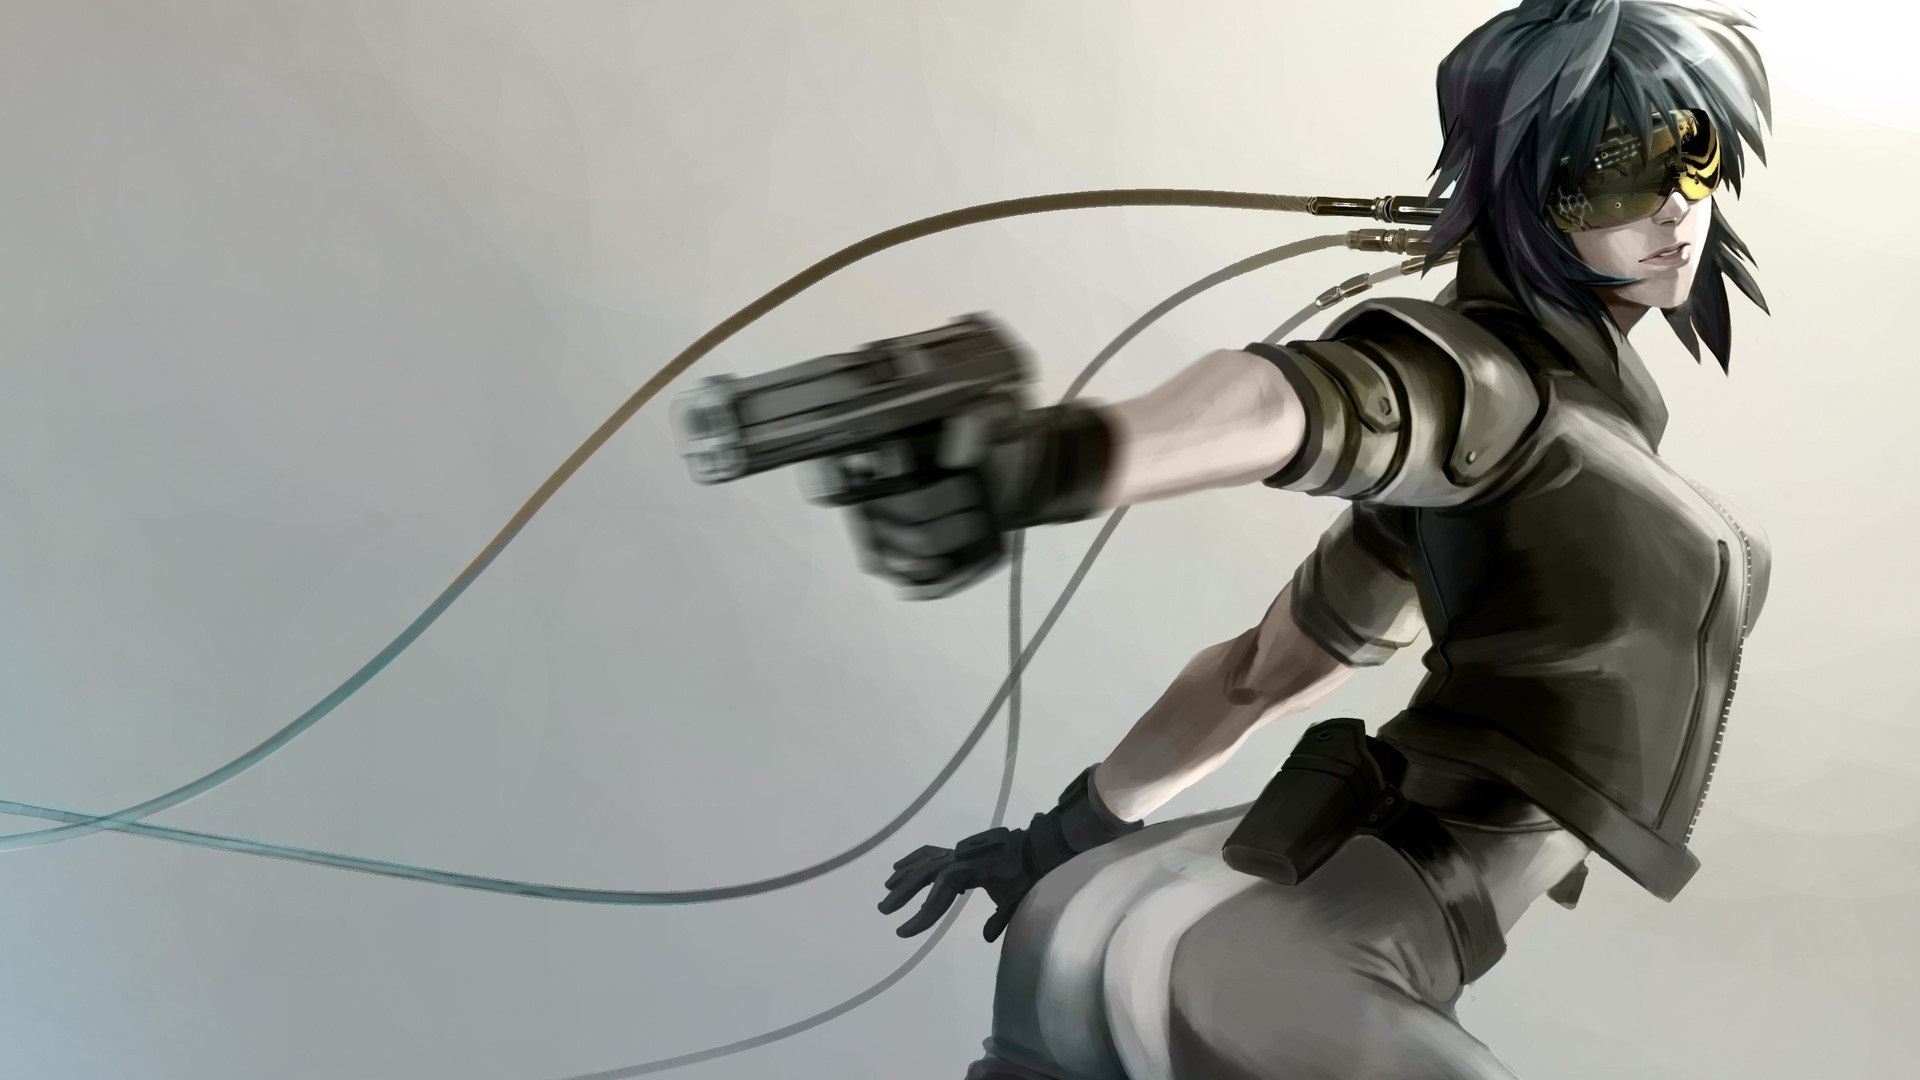 Motoko kusanagi ghost in the shell vs kasumi dead or alive 5